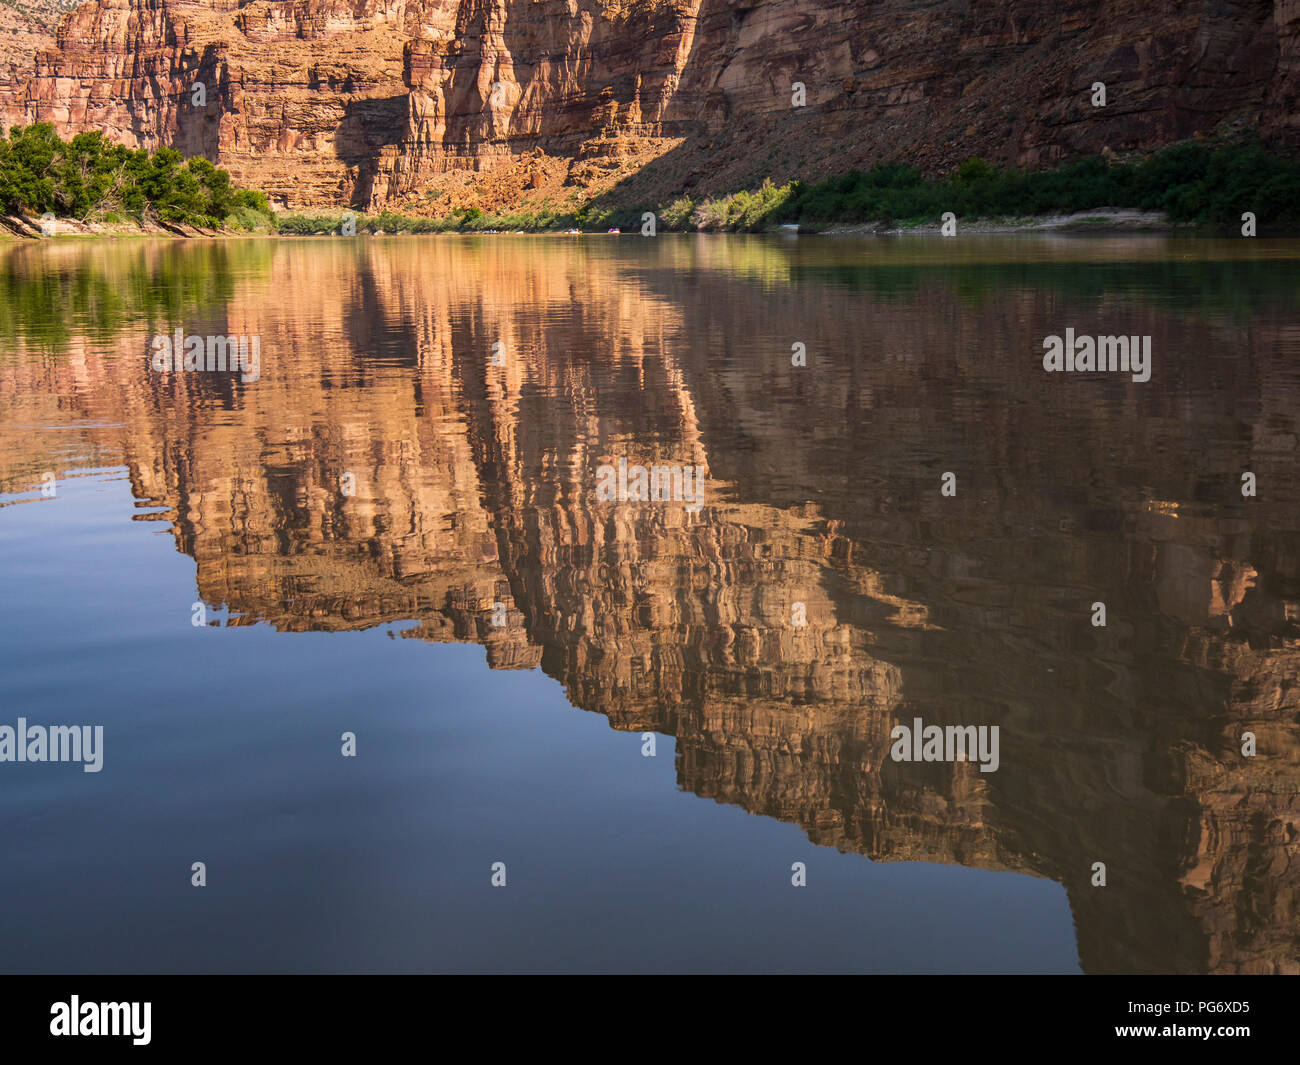 Cliffs reflecting in the water, upper Desolation Canyon north of Green River, Utah. - Stock Image